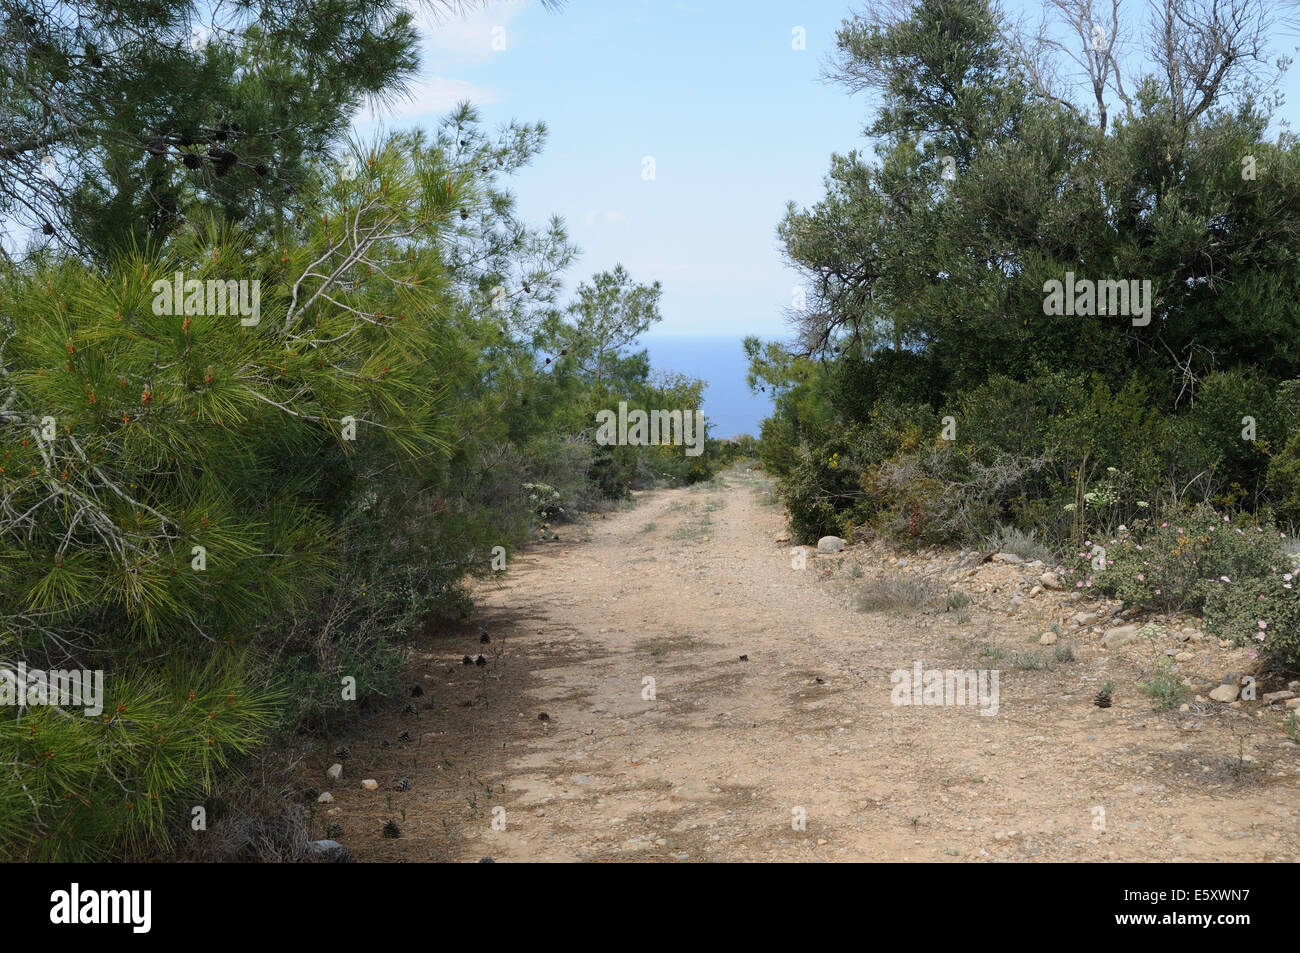 Path through Besparmak Mountains towards the coast at Kaplica North Cyprus Stock Photo